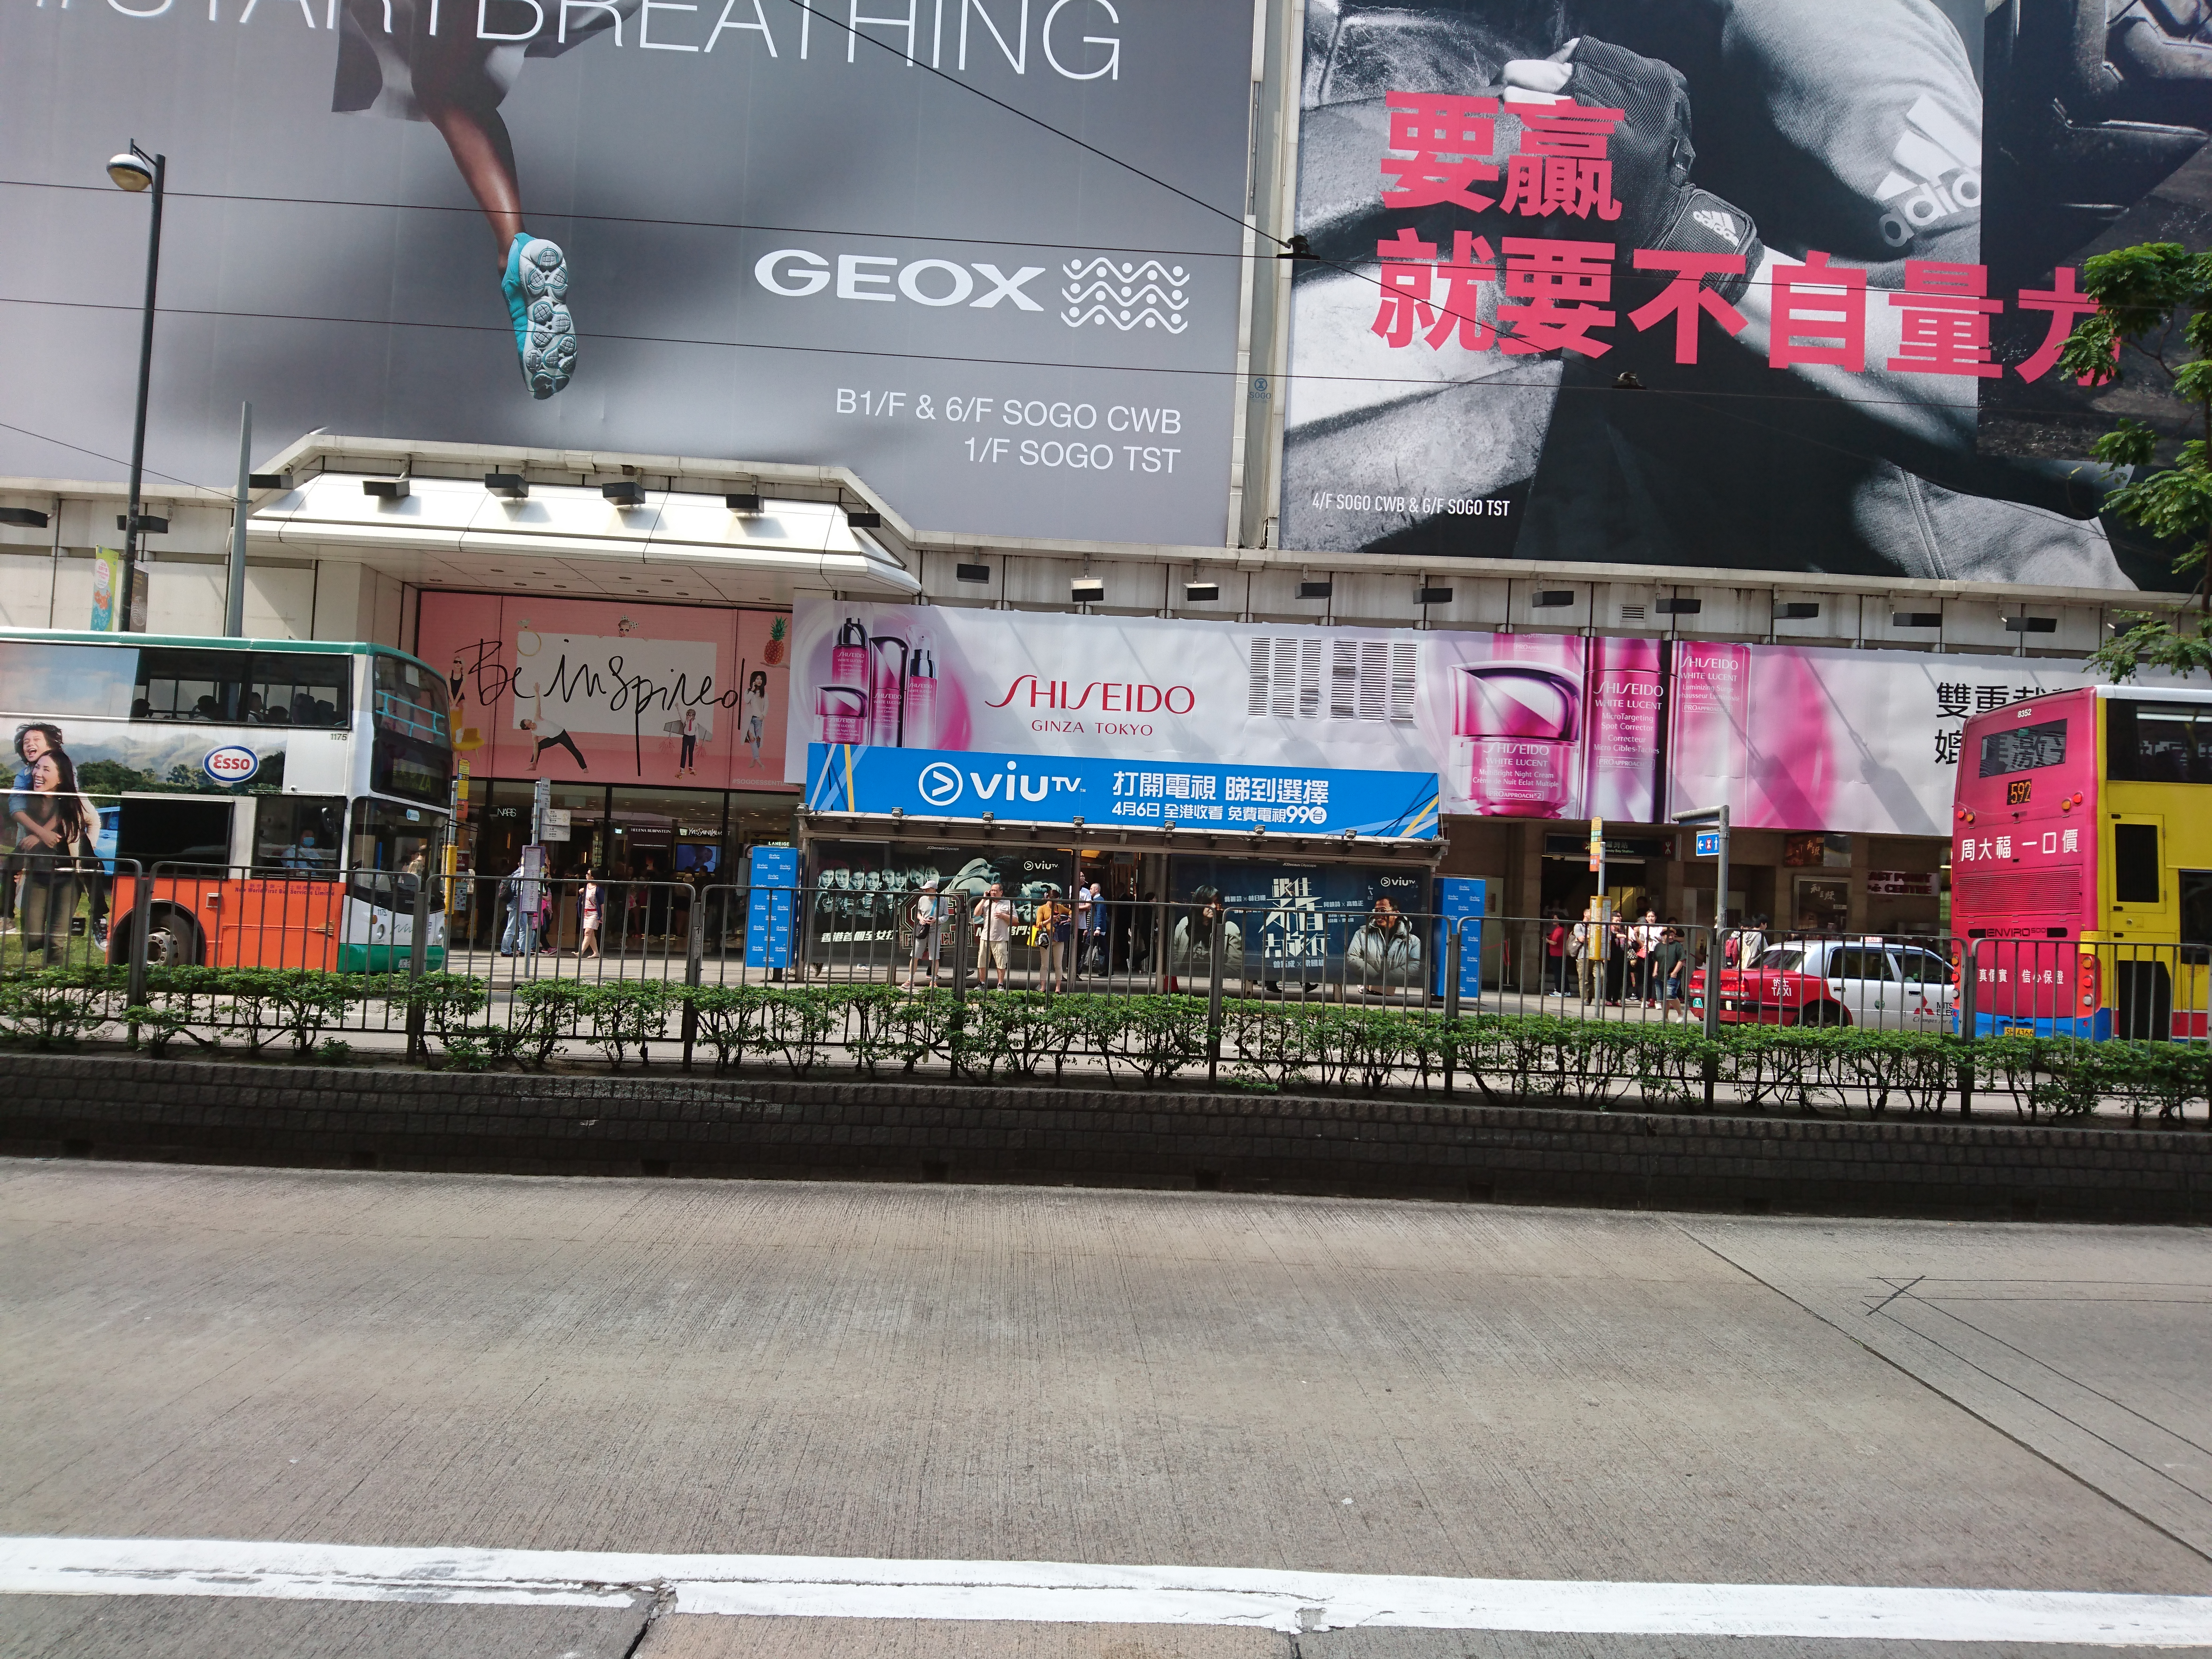 File:Causway Bay Sogo Bus Stop with ViuTV Promotion jpg